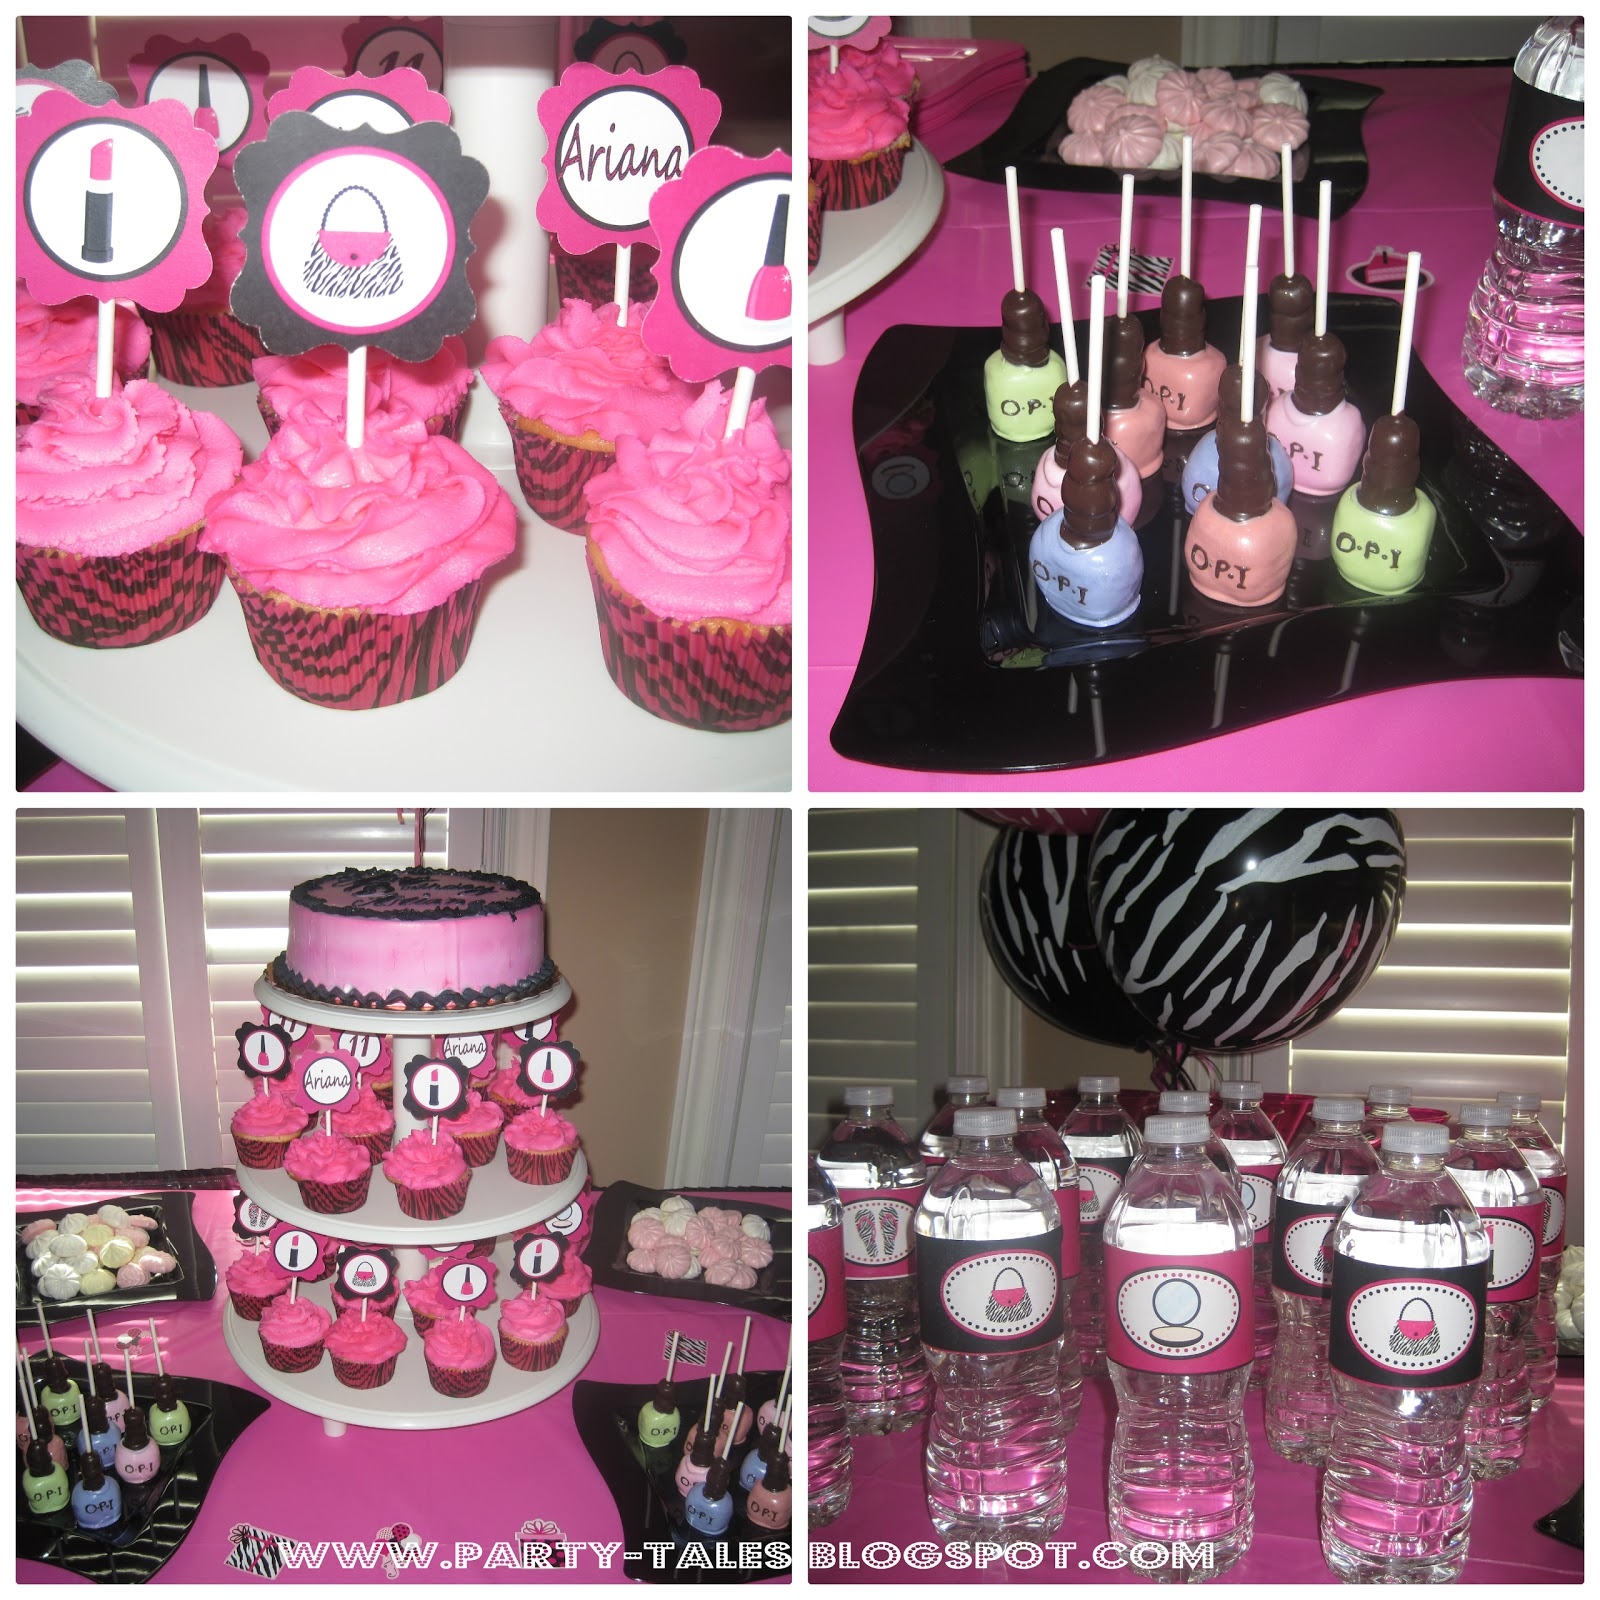 Party-Tales: ~ Birthday Party ~ Zebra Print and Hot Pink DIVA SPA ...